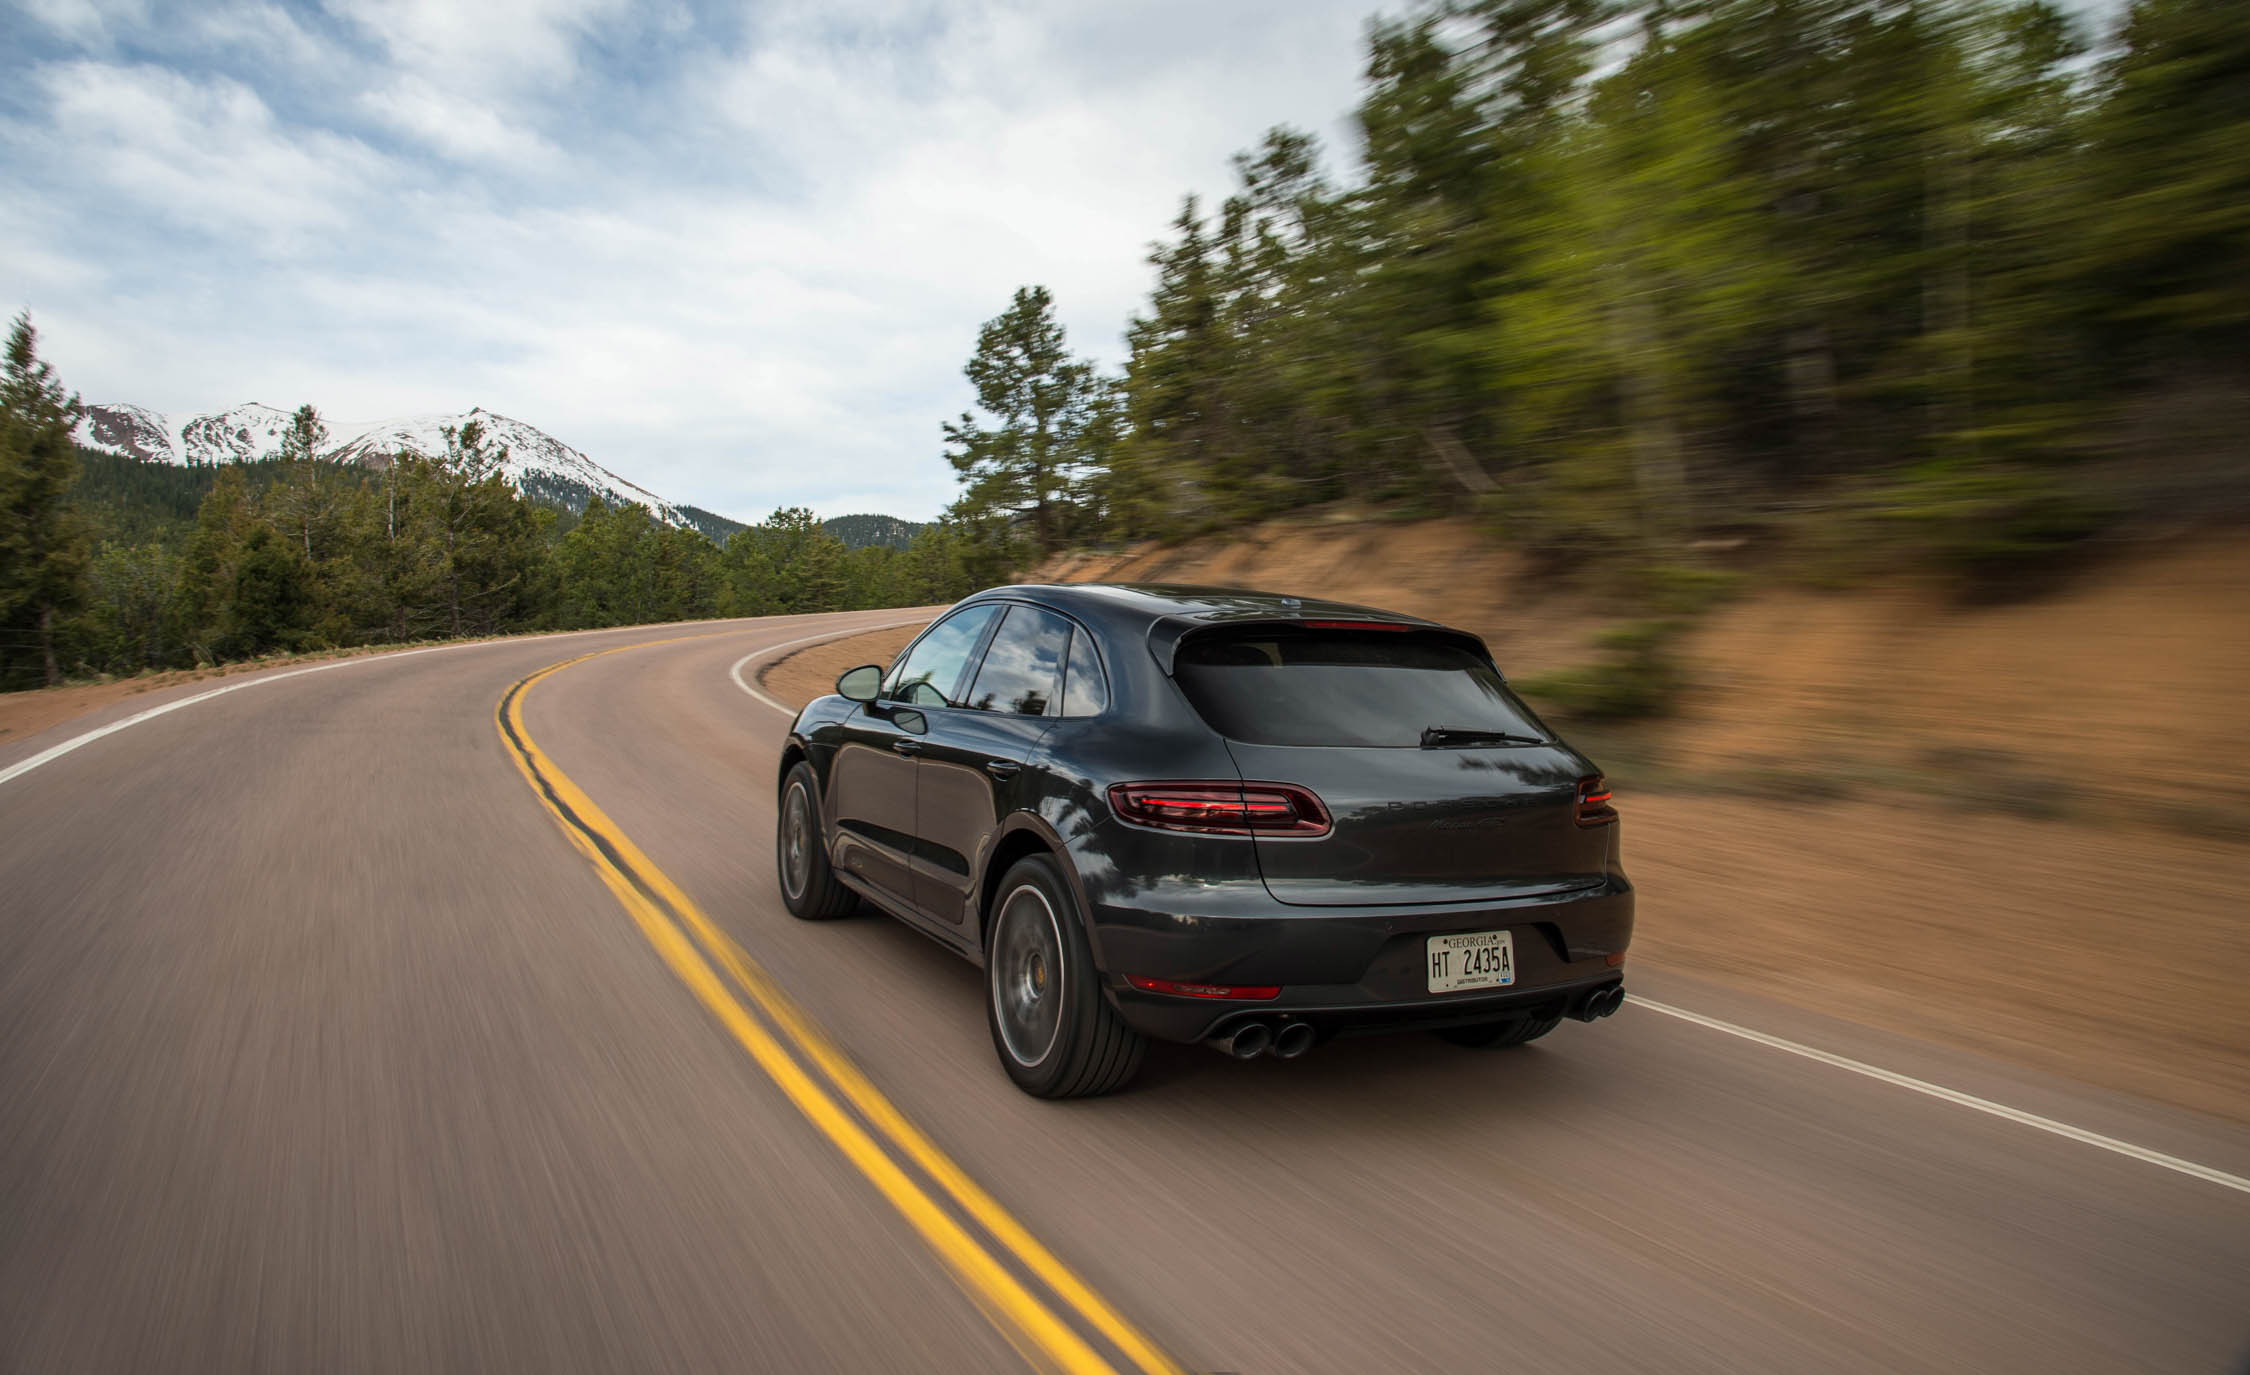 2017 Porsche Macan GTS (View 6 of 30)